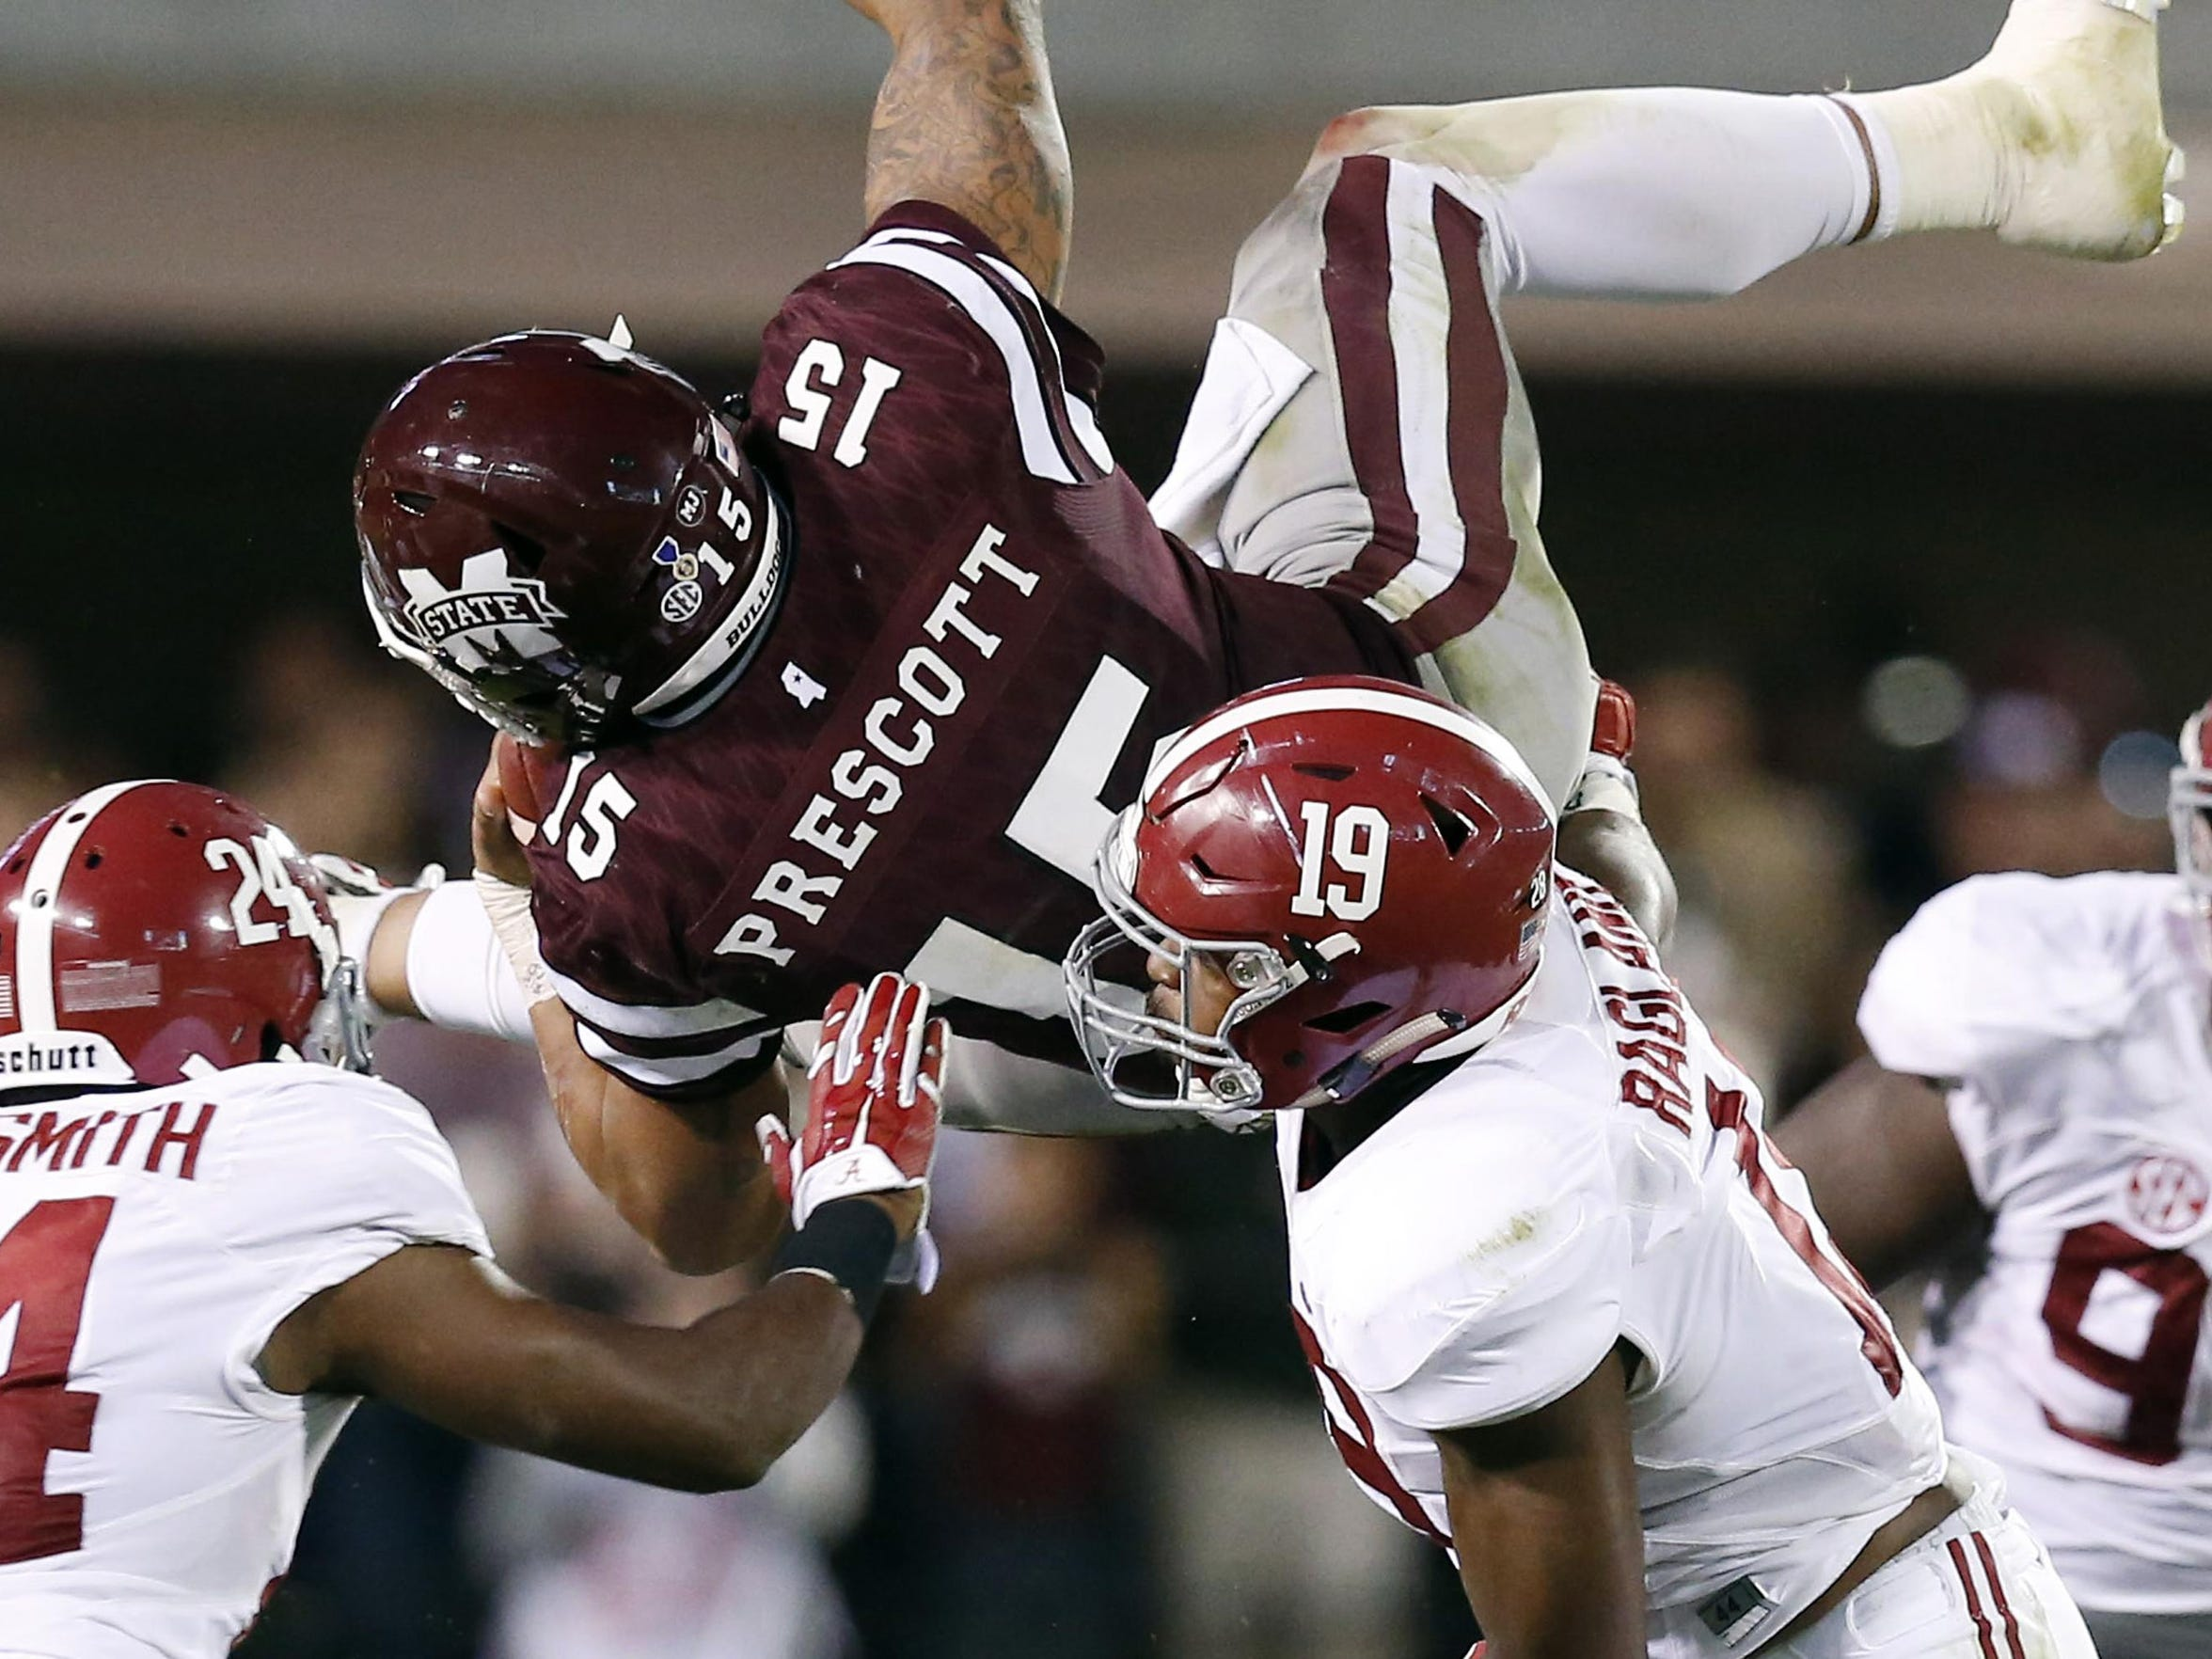 Mississippi State quarterback Dak Prescott is upended by Alabama's defense in Starkville, Miss., on Saturday.